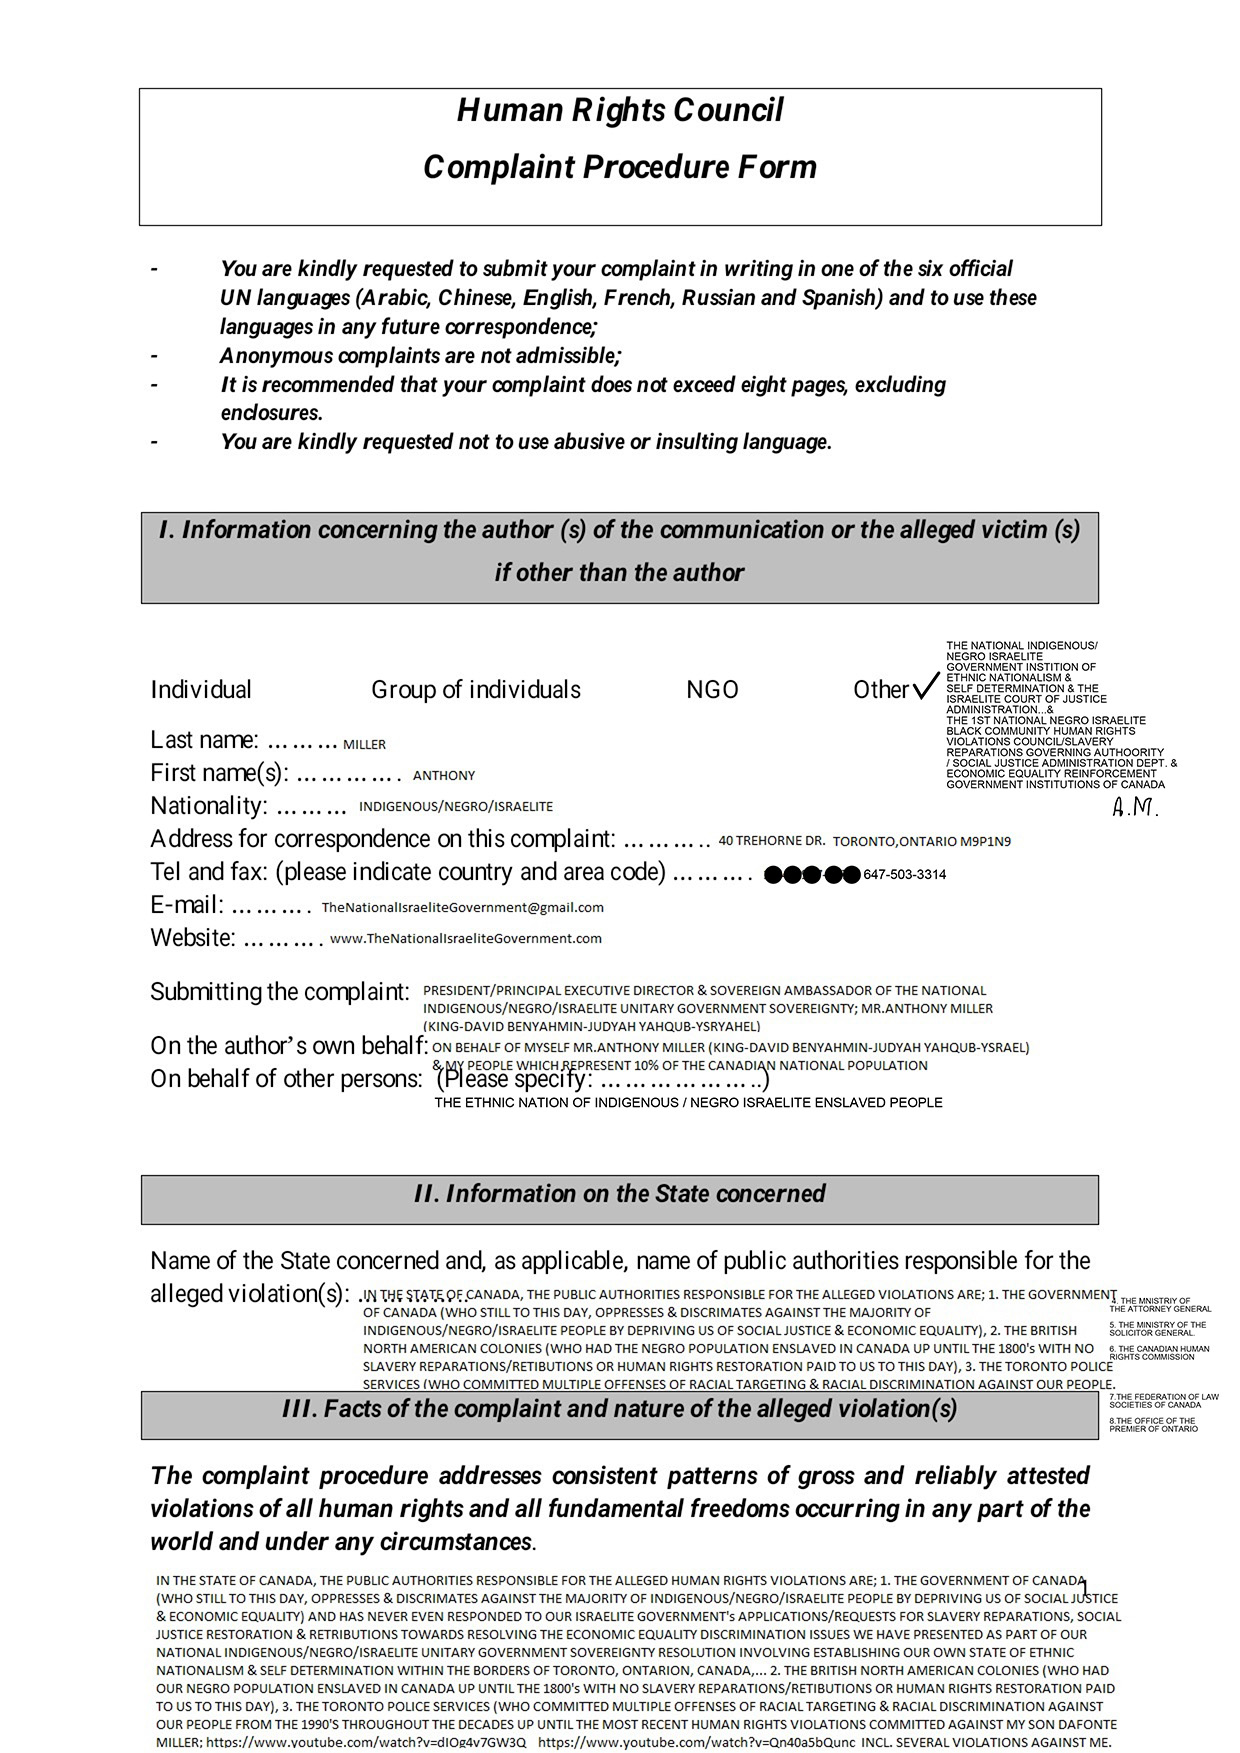 UNITED NATIONS HUMAN RIGHTS COMPLAINTS APPLICATION PART 1